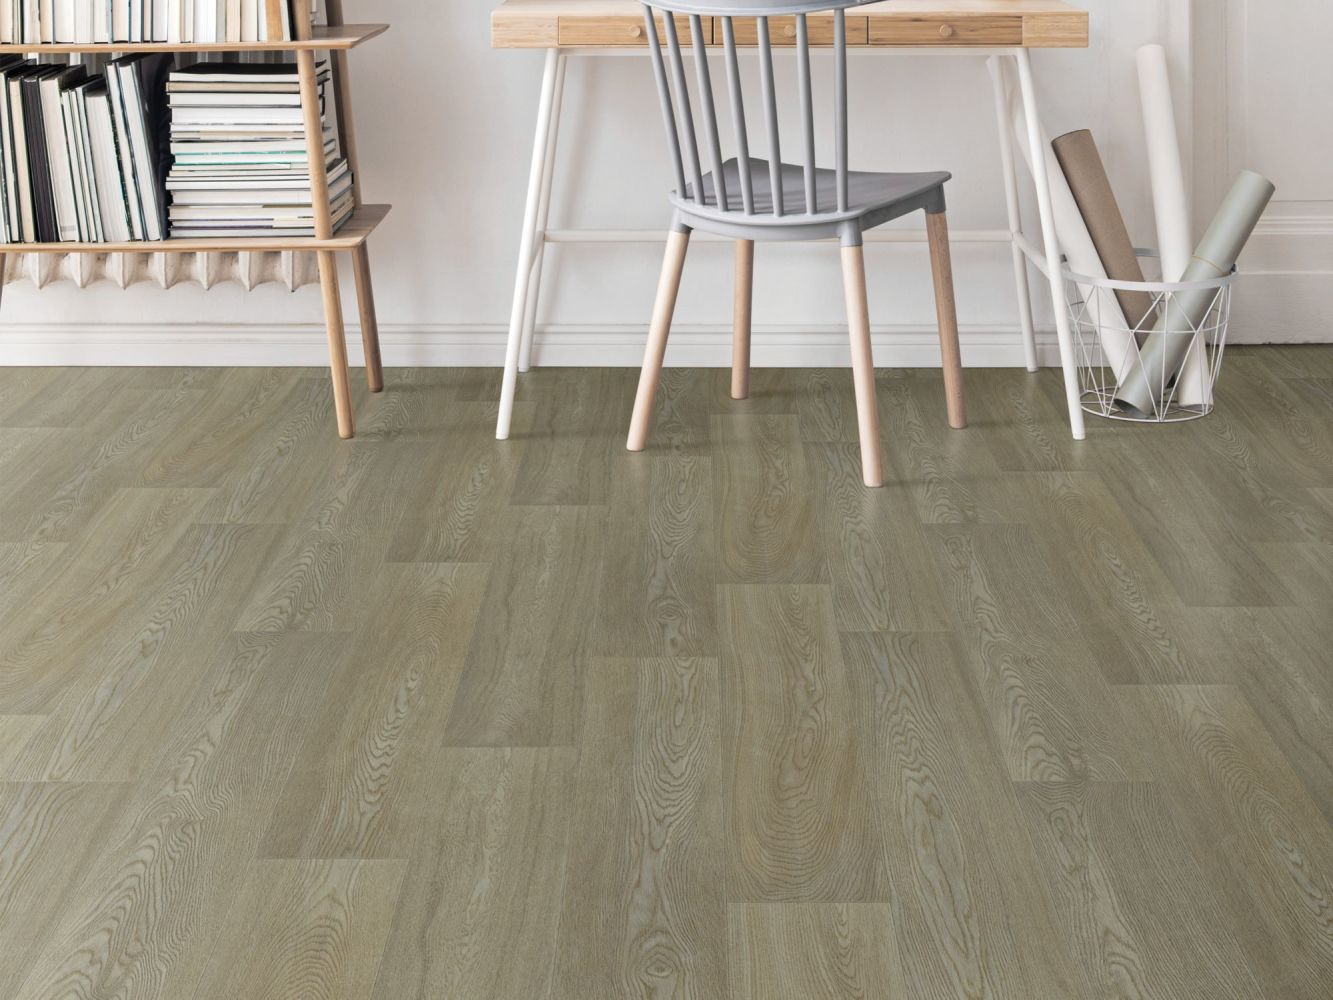 Shaw Floors Resilient Residential Cottage Chic Borbeck 00146_1048V